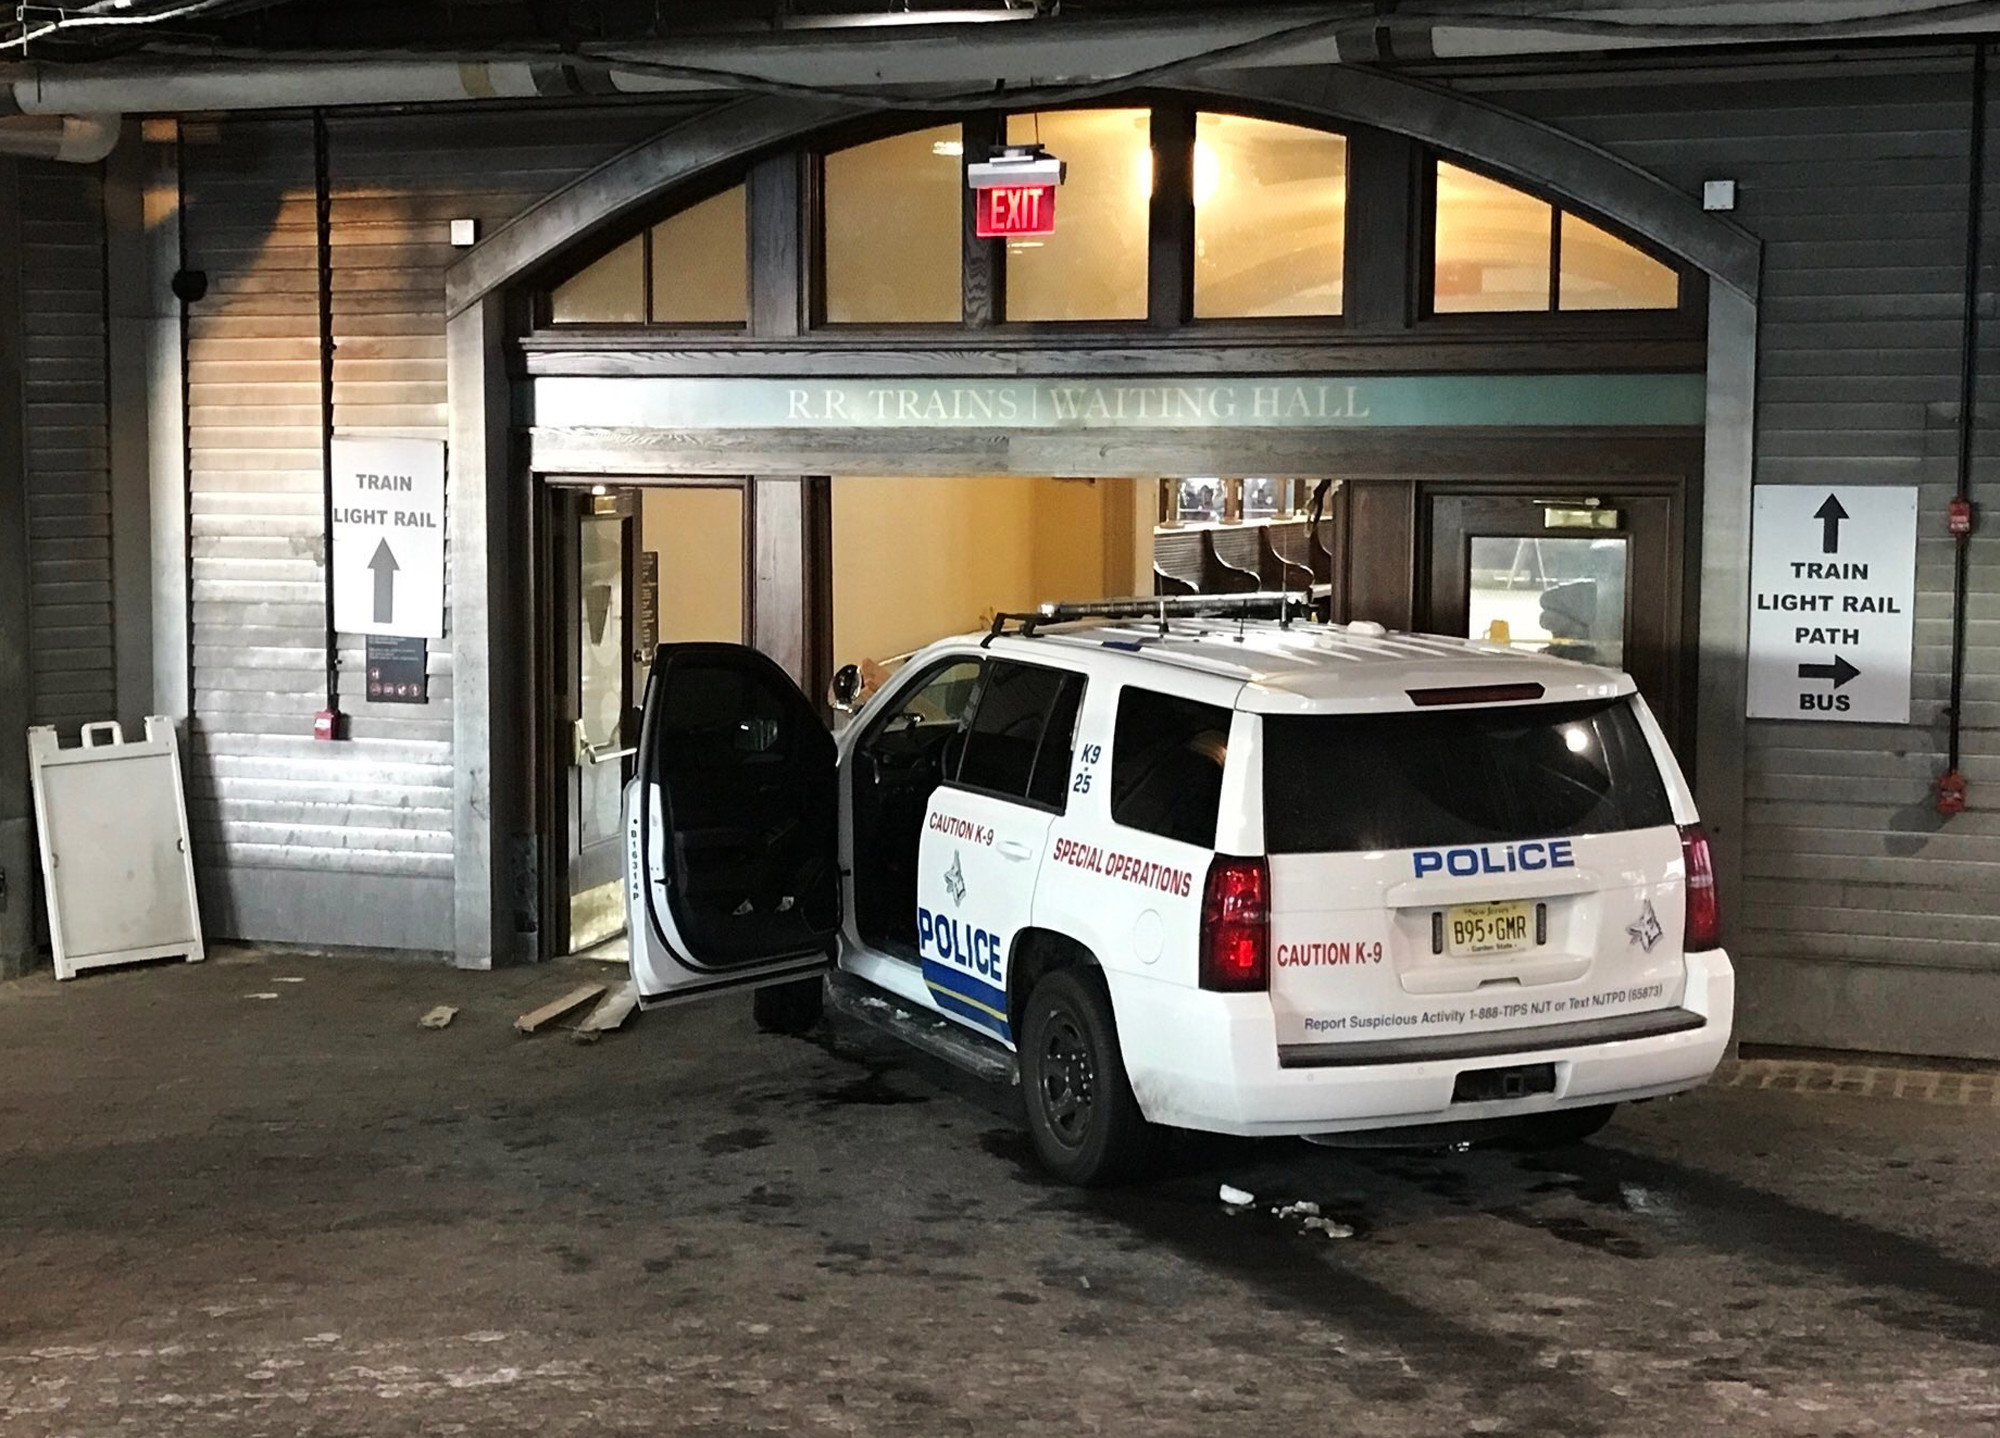 No injuries after person steals police SUV in New Jersey